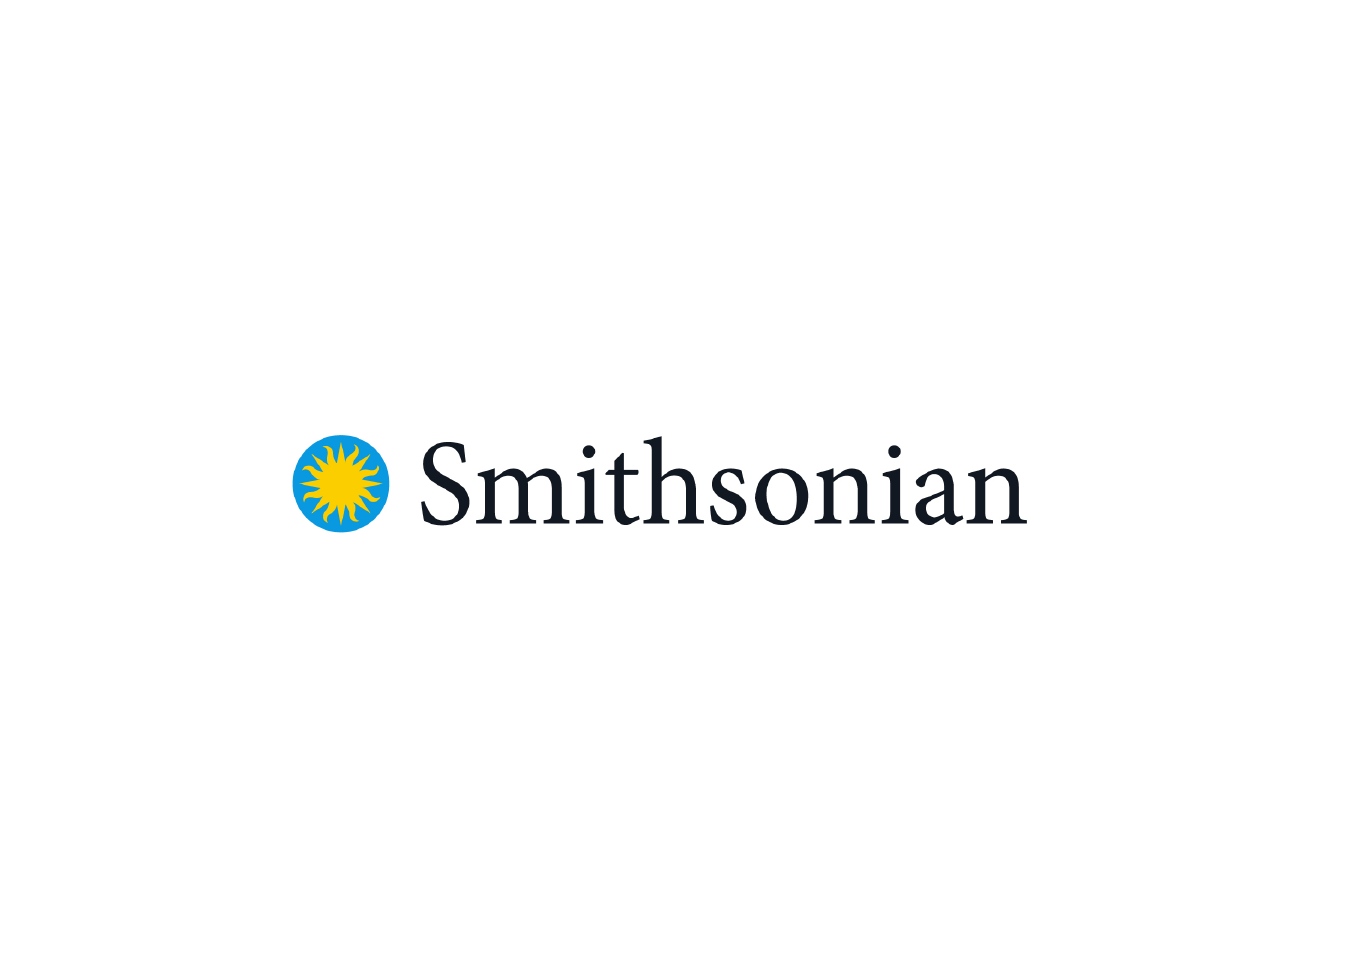 Smithsonian@3x.png